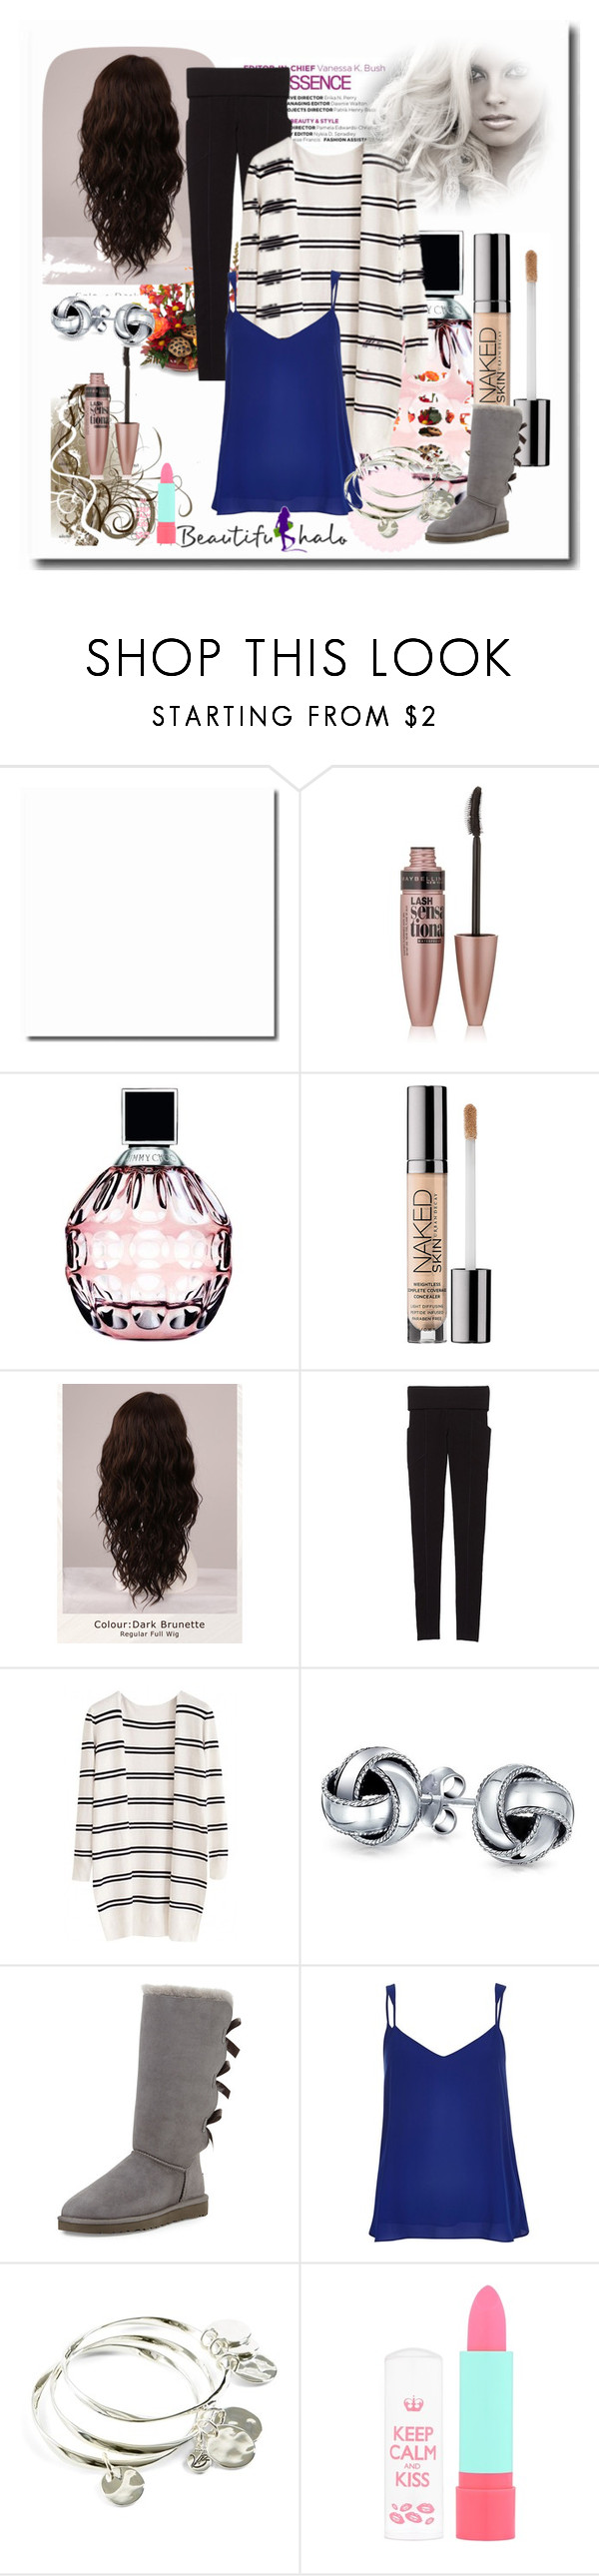 """""""School Outfits"""" by schooloutfits101 on Polyvore featuring Maybelline, Jimmy Choo, Urban Decay, WigYouUp, Victoria's Secret, Bling Jewelry, UGG Australia, River Island, Vera Bradley and Rimmel"""